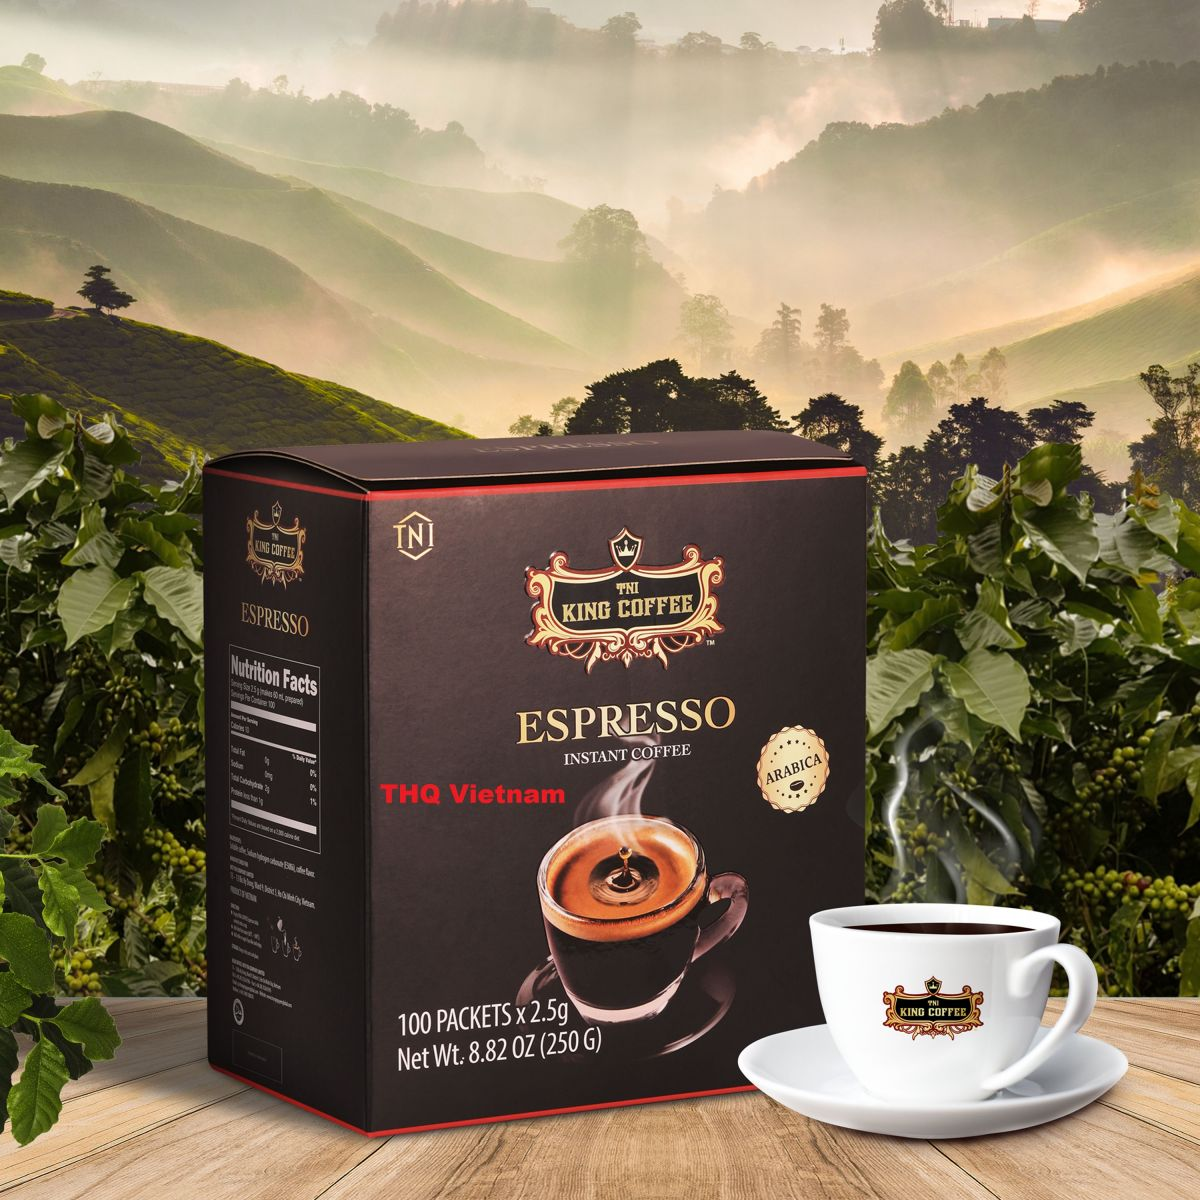 The King Instant Coffee - Espressco coffee